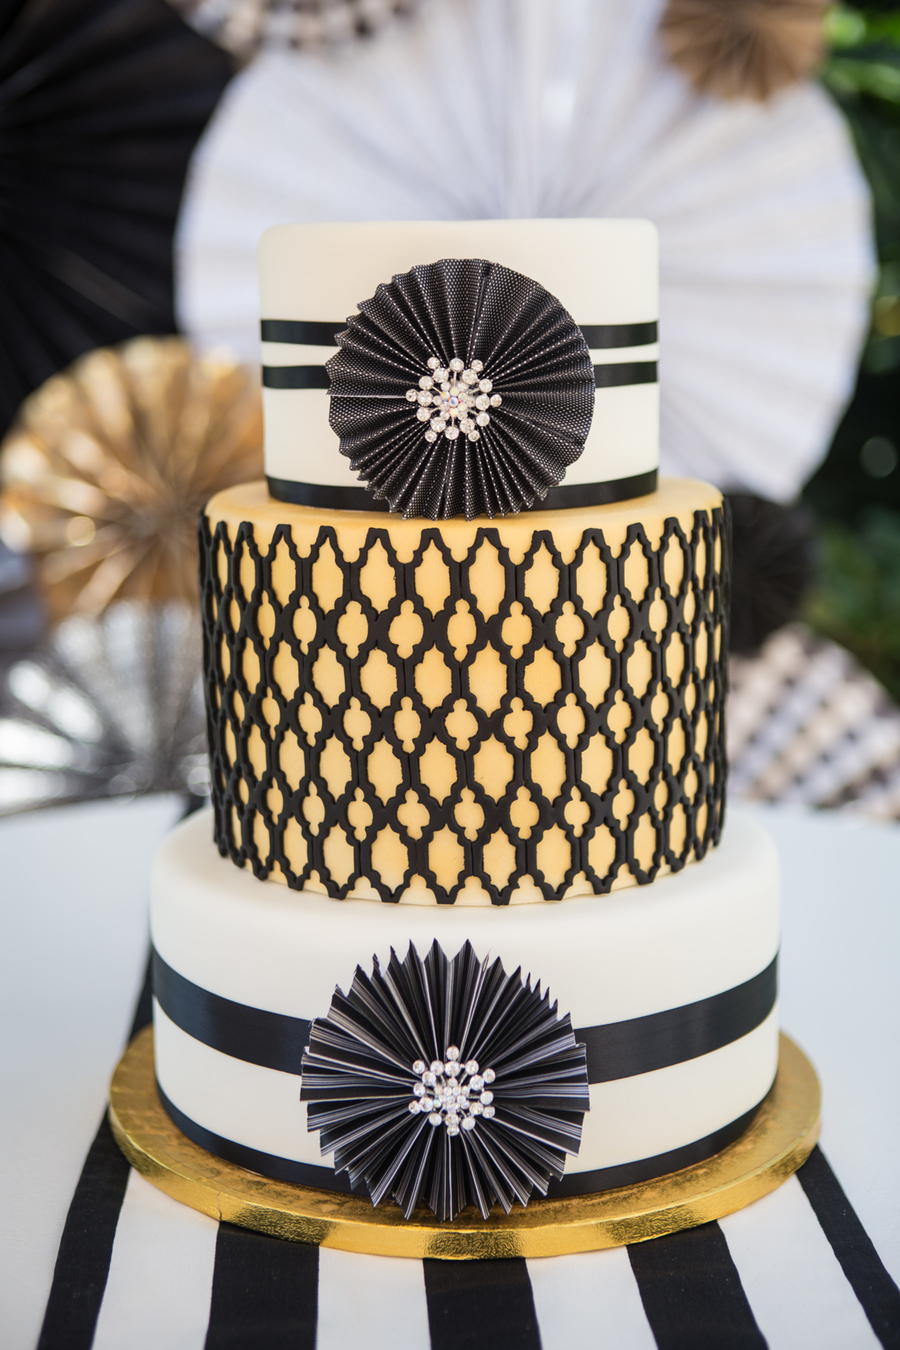 Black White And Gold Wedding Cake Incorporating The Paper Wheels And     Black White And Gold Wedding Cake Incorporating The Paper Wheels And Some  Bling With A Quatrefoil